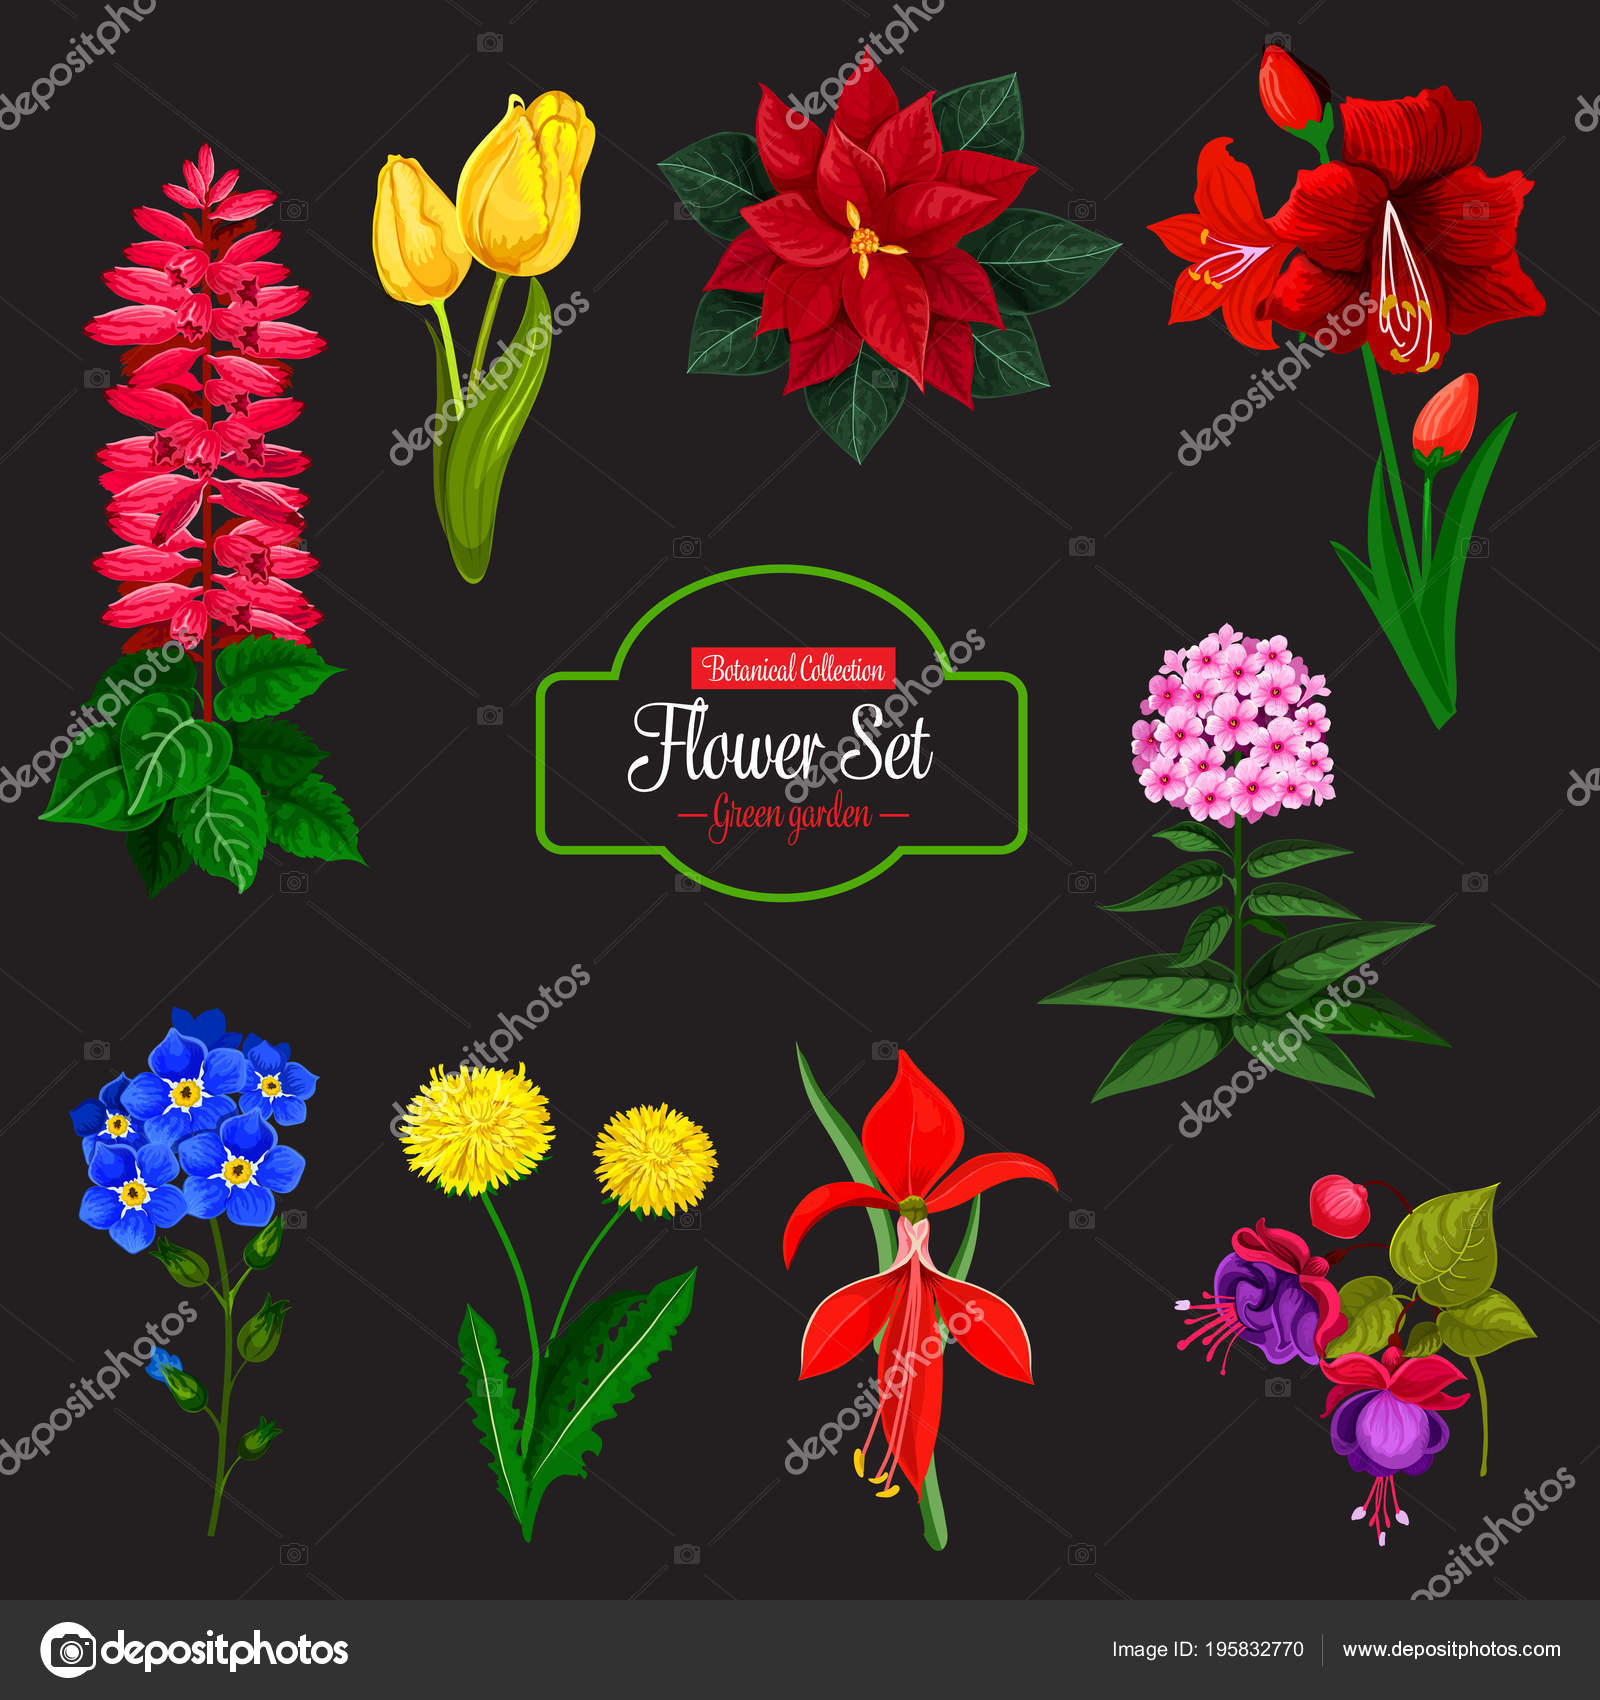 Flower bouquet cartoon icon for floral design stock vector flower bouquet cartoon icon for floral design stock vector izmirmasajfo